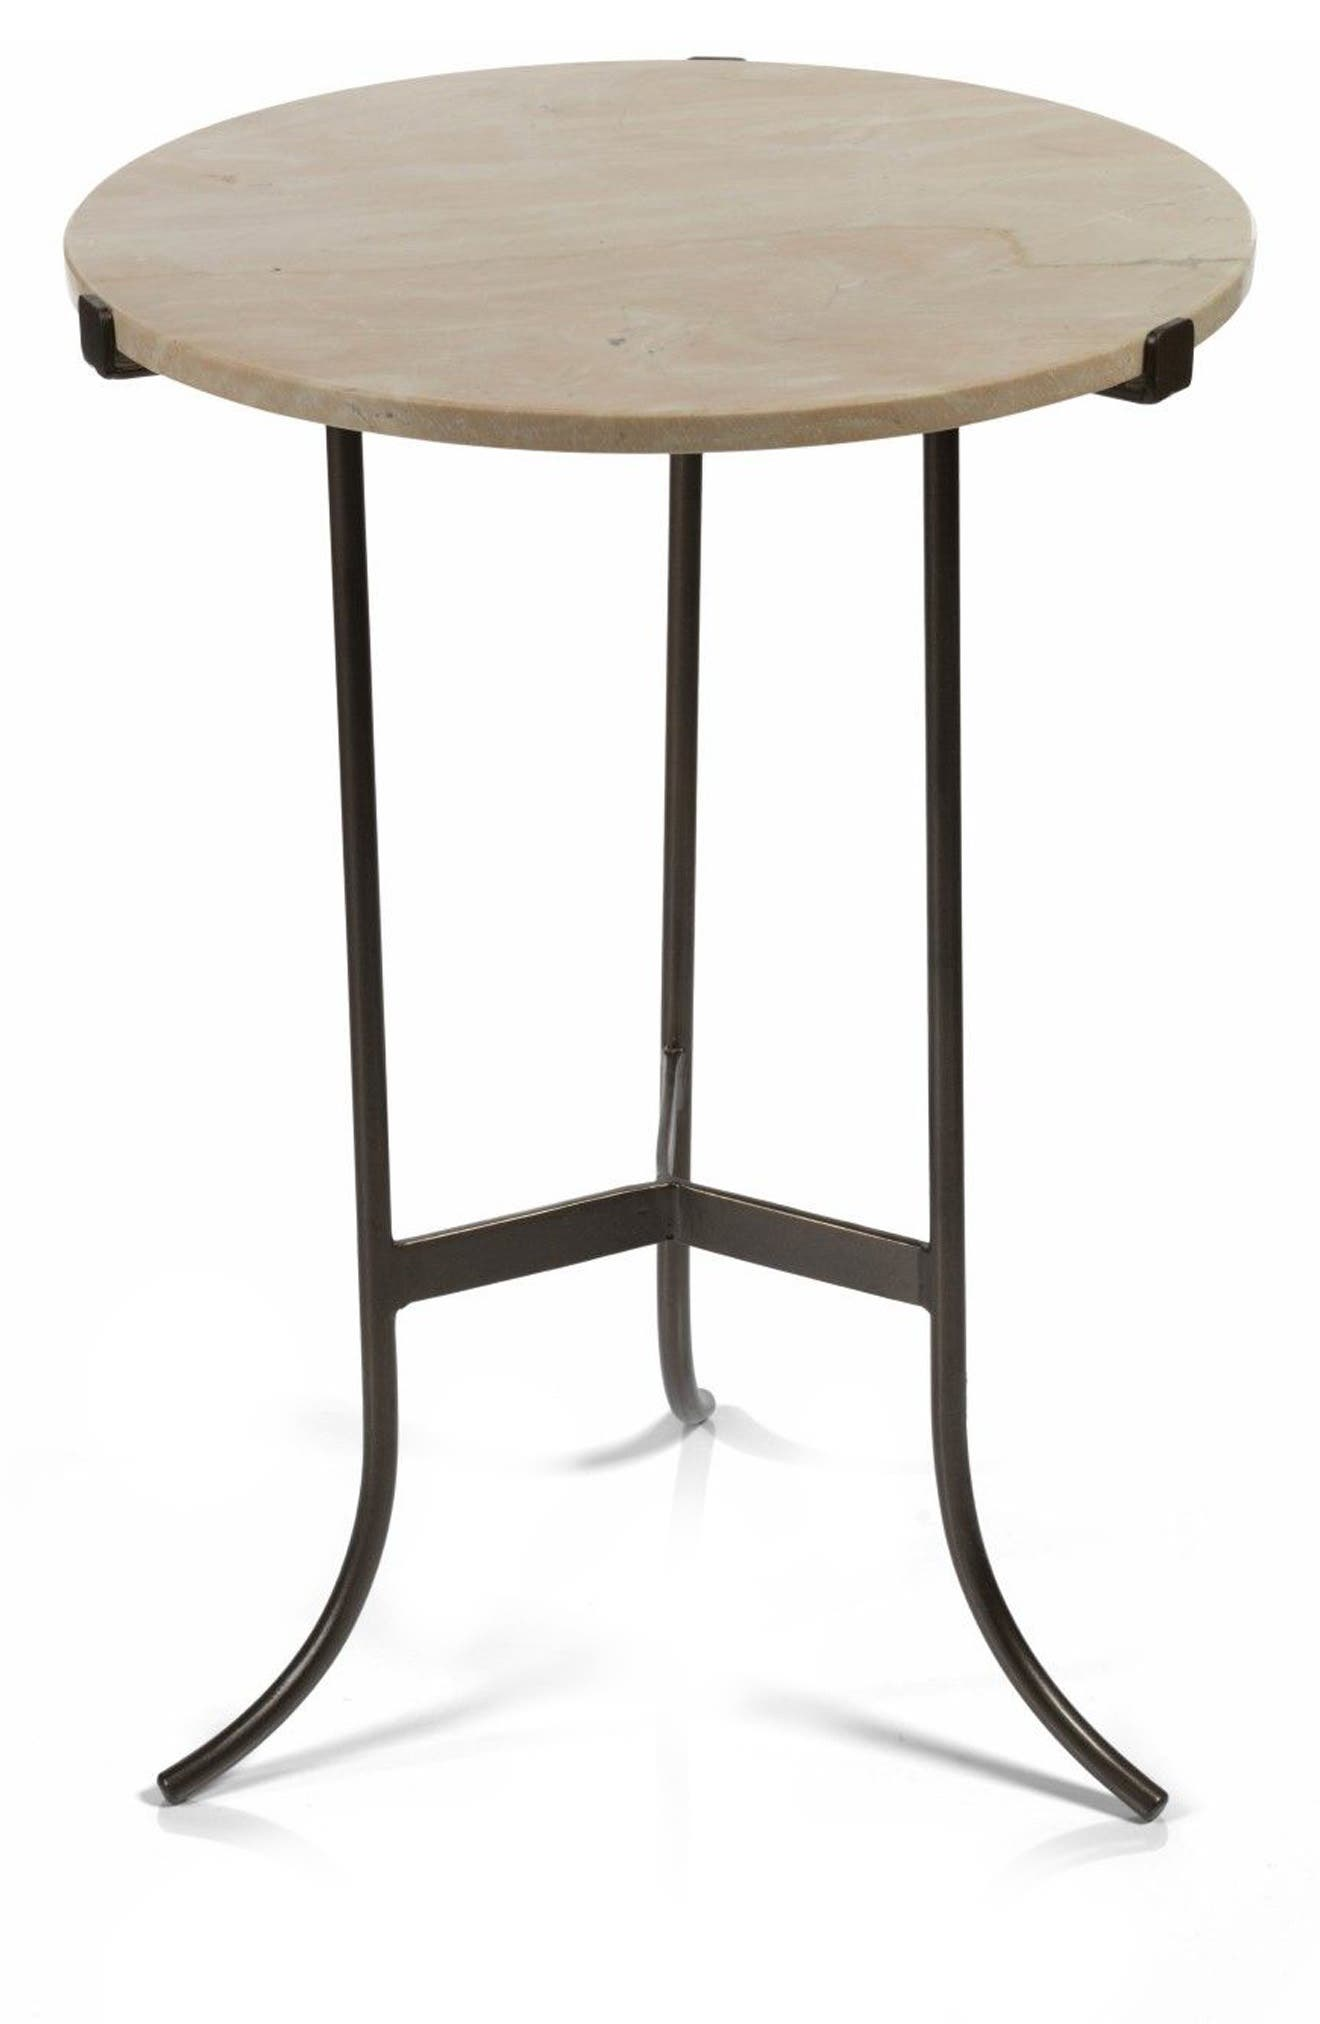 Mimouna Marble Top Indoor/Outdoor Side Table,                             Main thumbnail 1, color,                             Beige